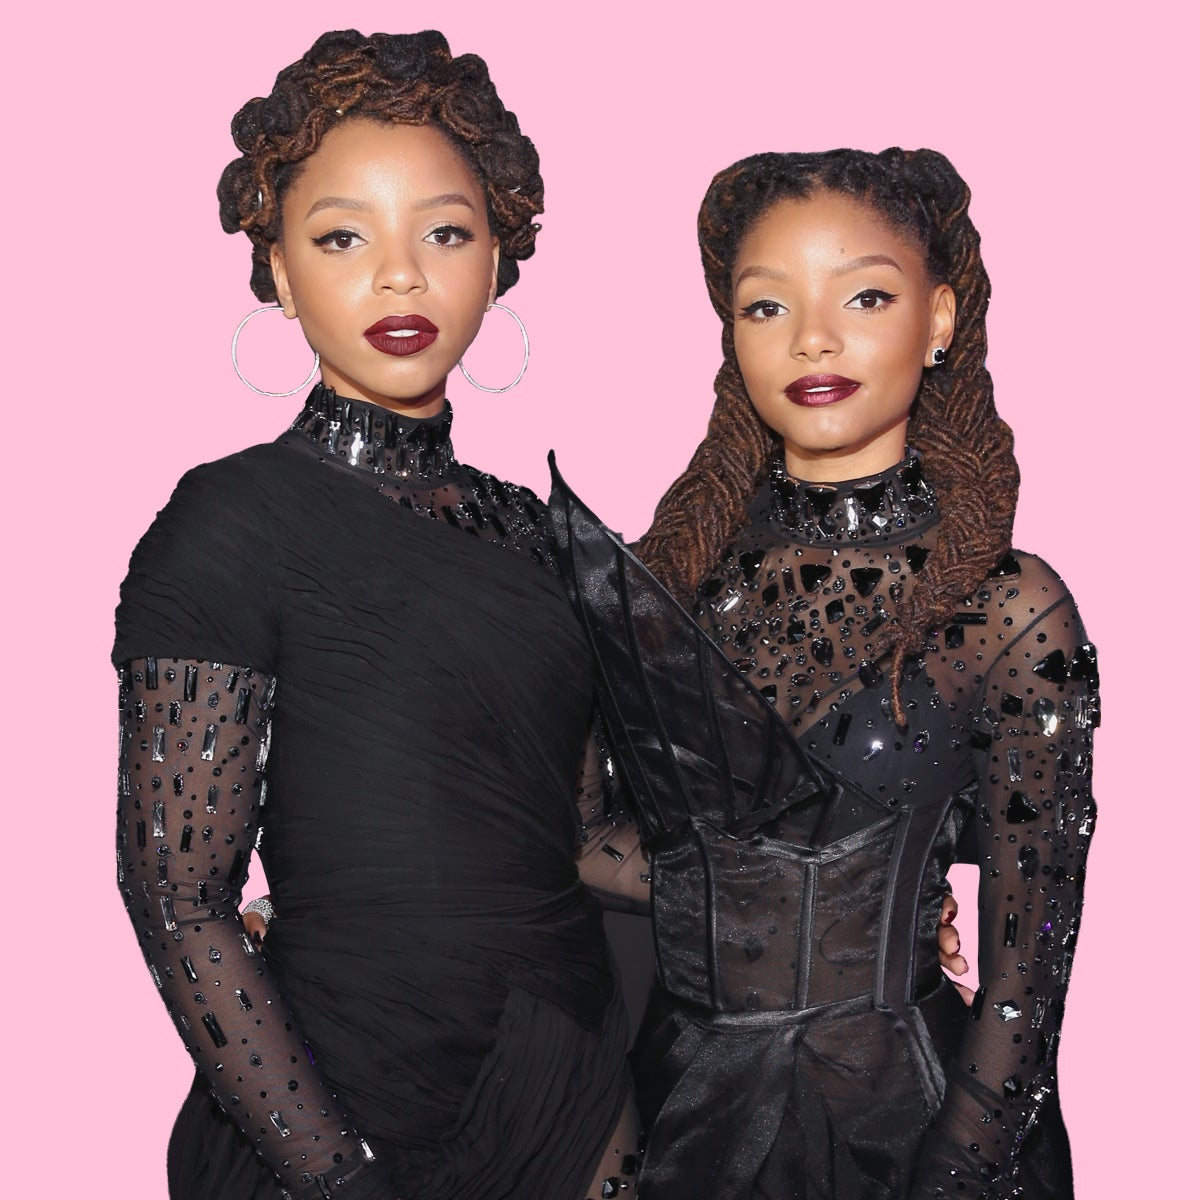 ESSENCE 25 Most Stylish: Chloe And Halle Are As Fierce On The Red Carpet As They Are On The Stage